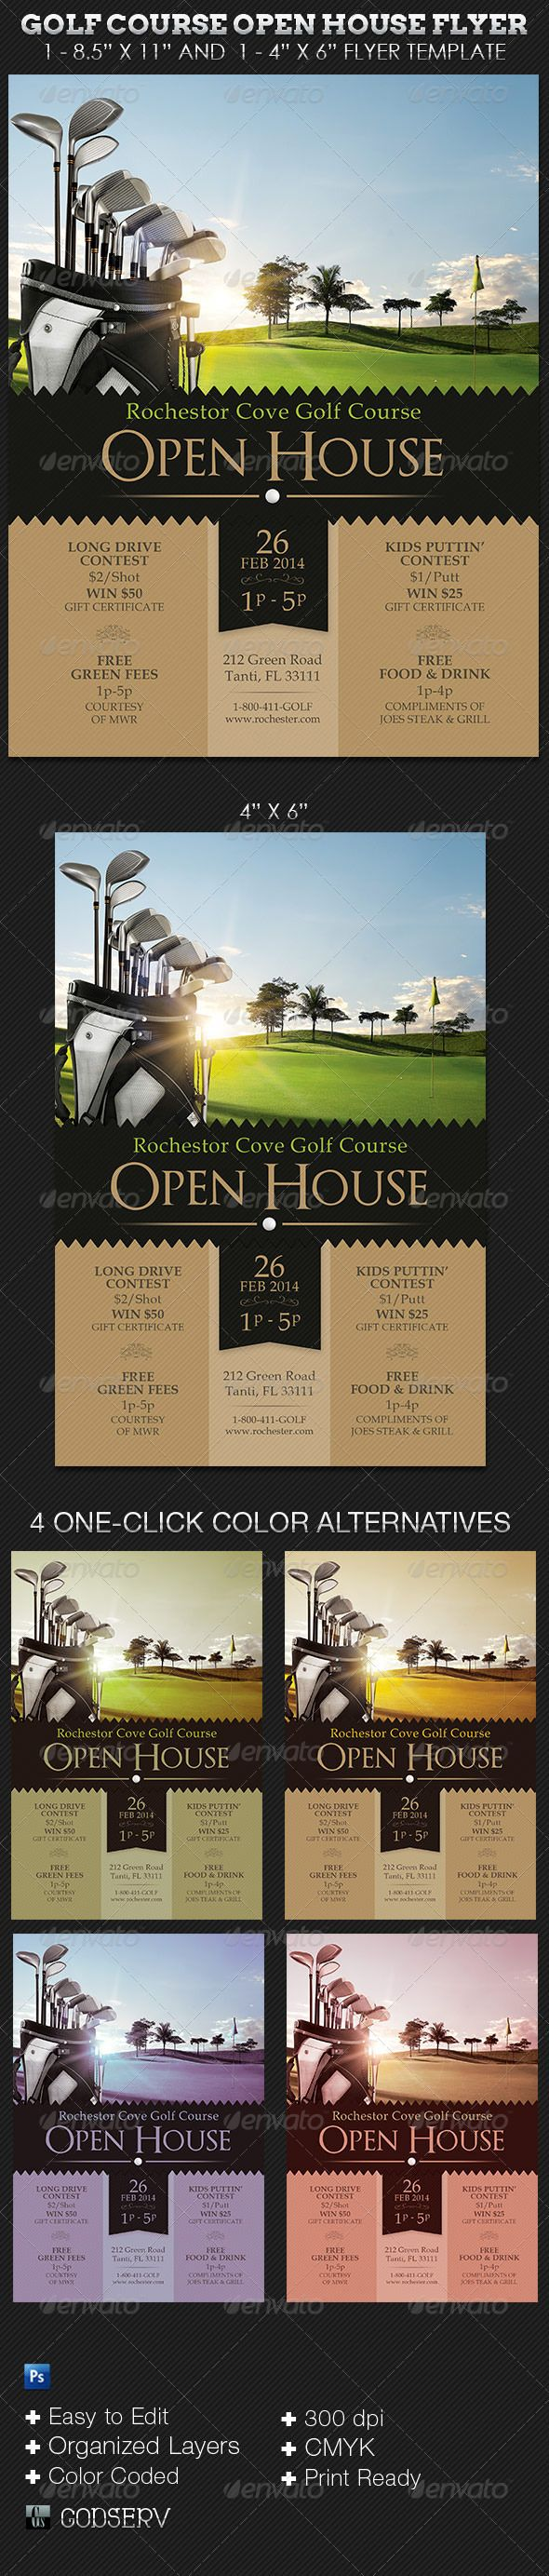 golf course open house flyer templates used books house and events the golf course open house flyer templates are for golf clubs or any sport club that